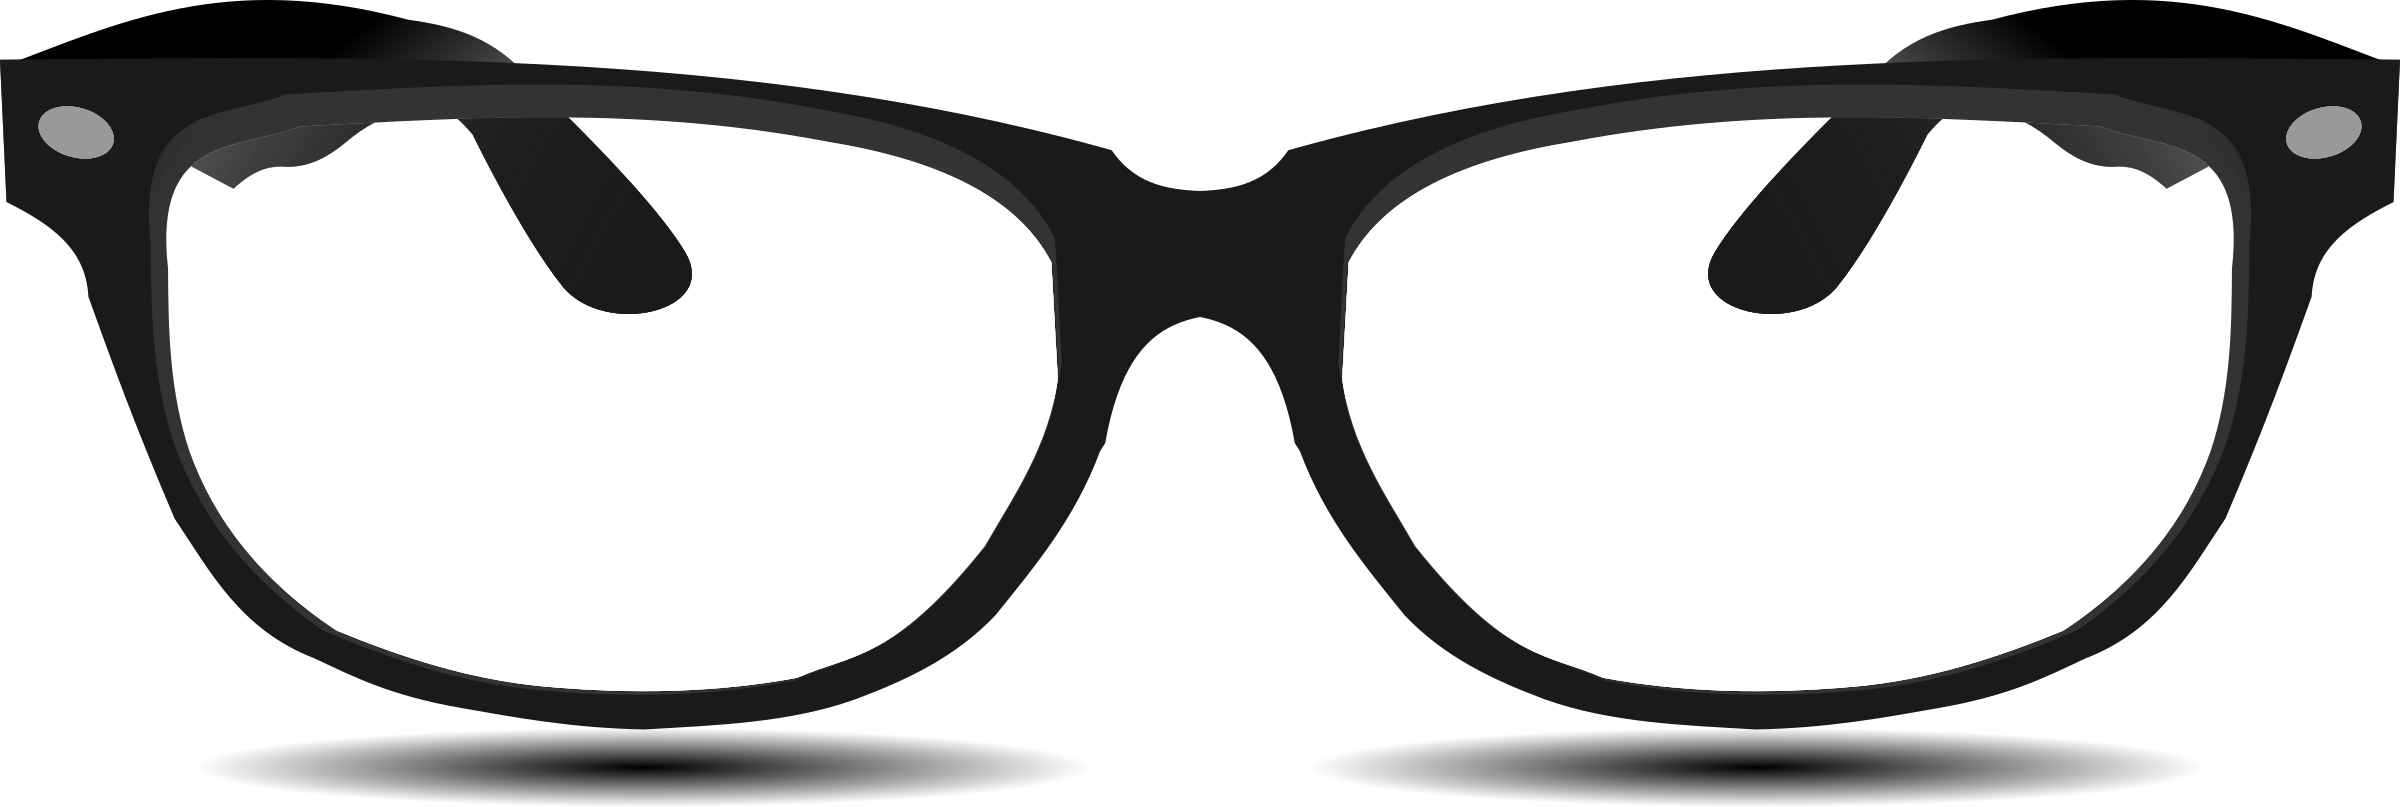 Glasses by hatalar a. Vision clipart bifocal glass